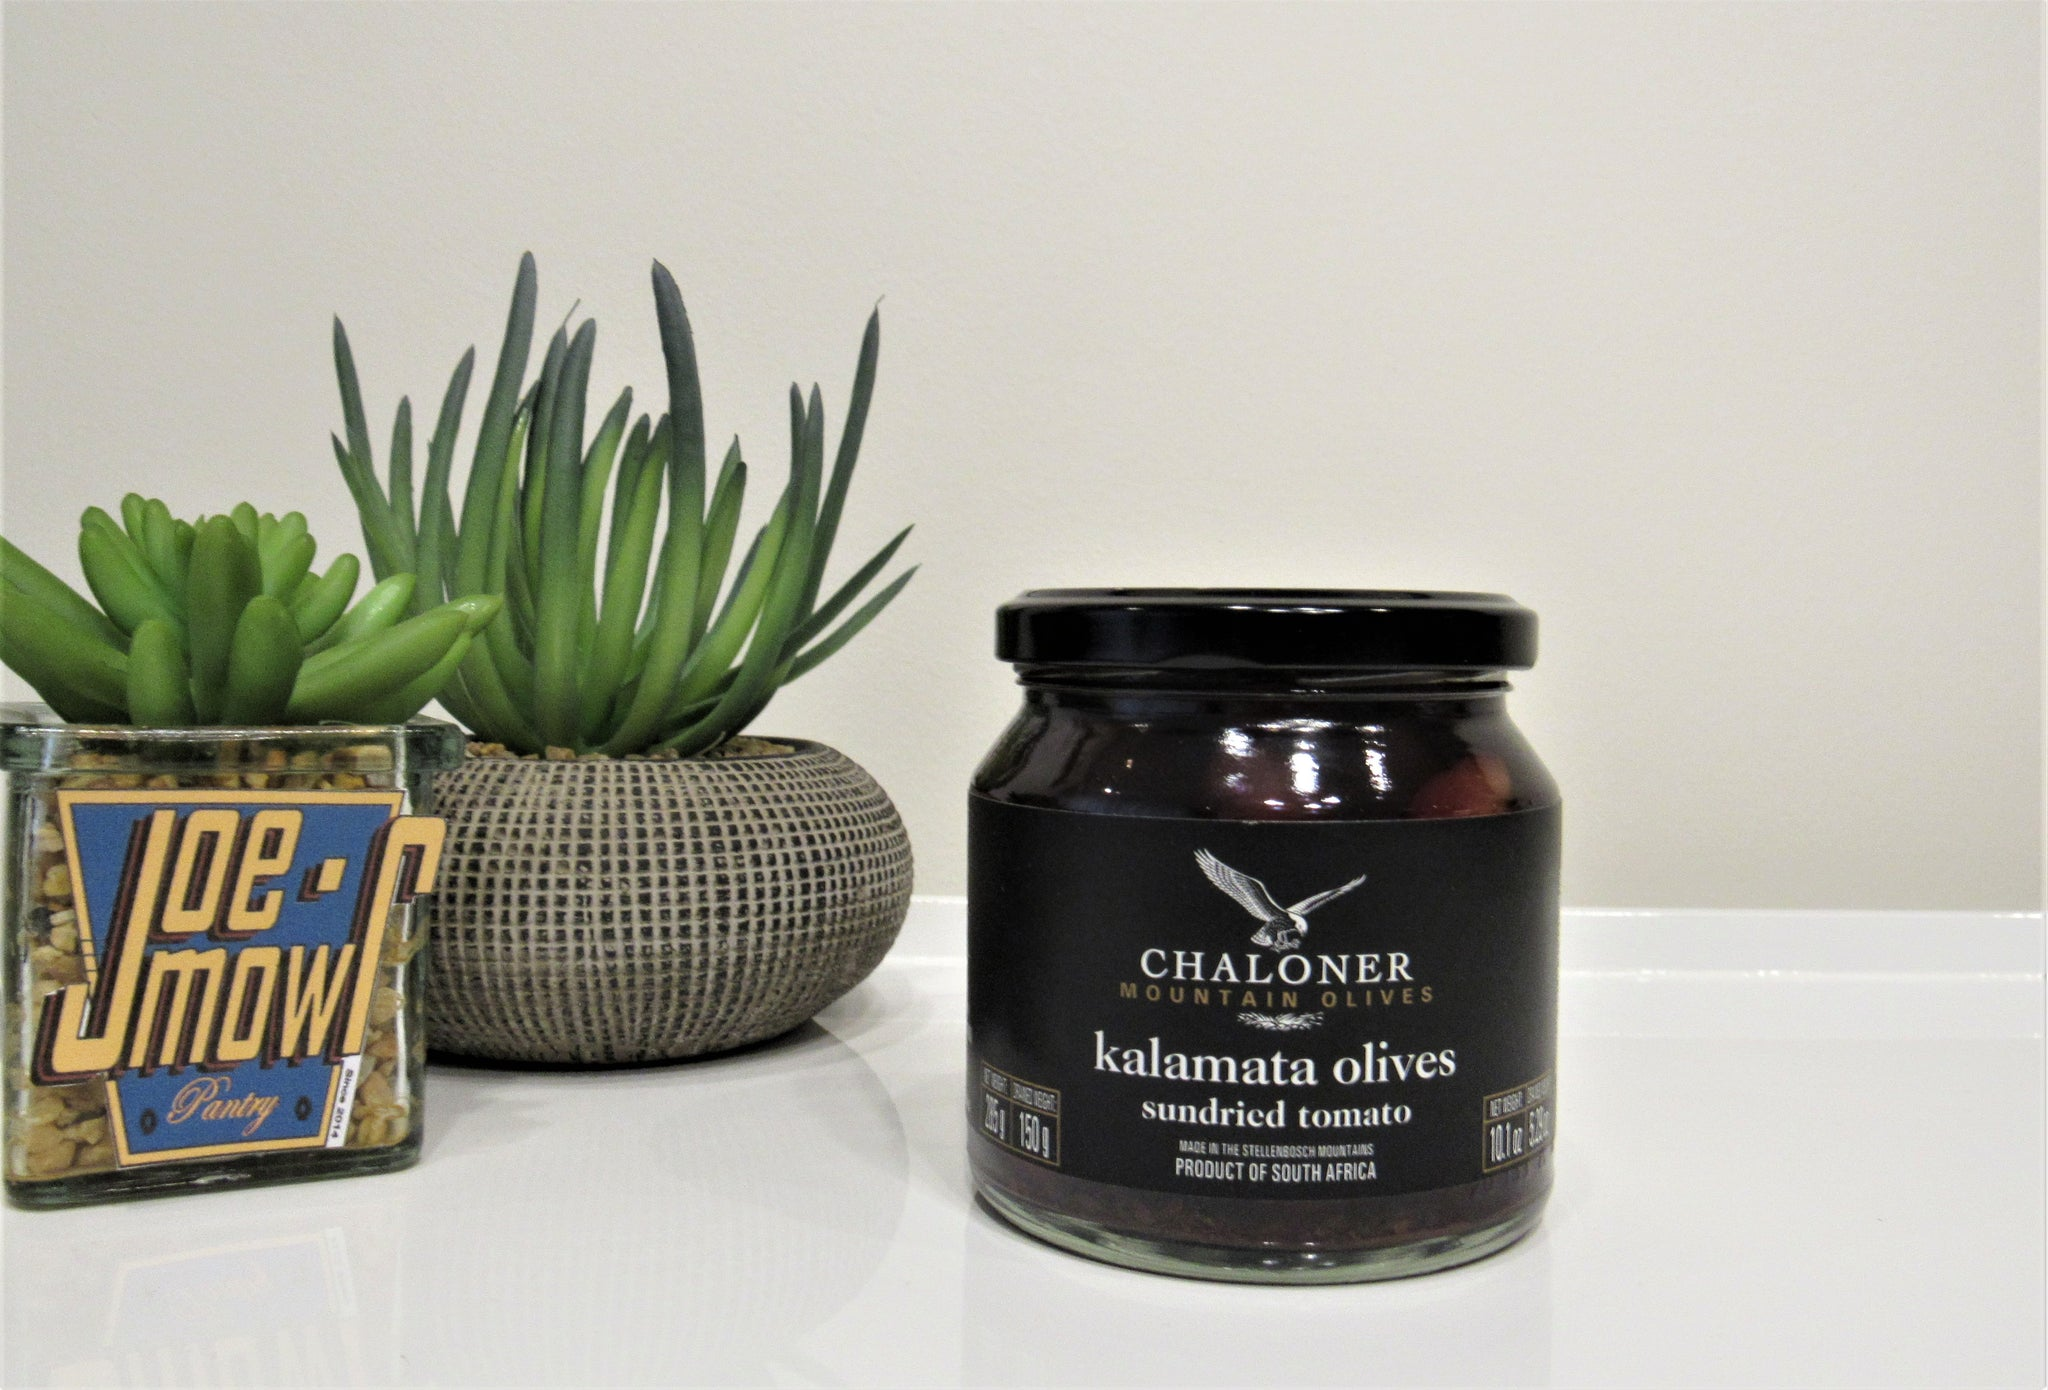 Chaloner Kalamata Olives With Sundried Tomato 285g